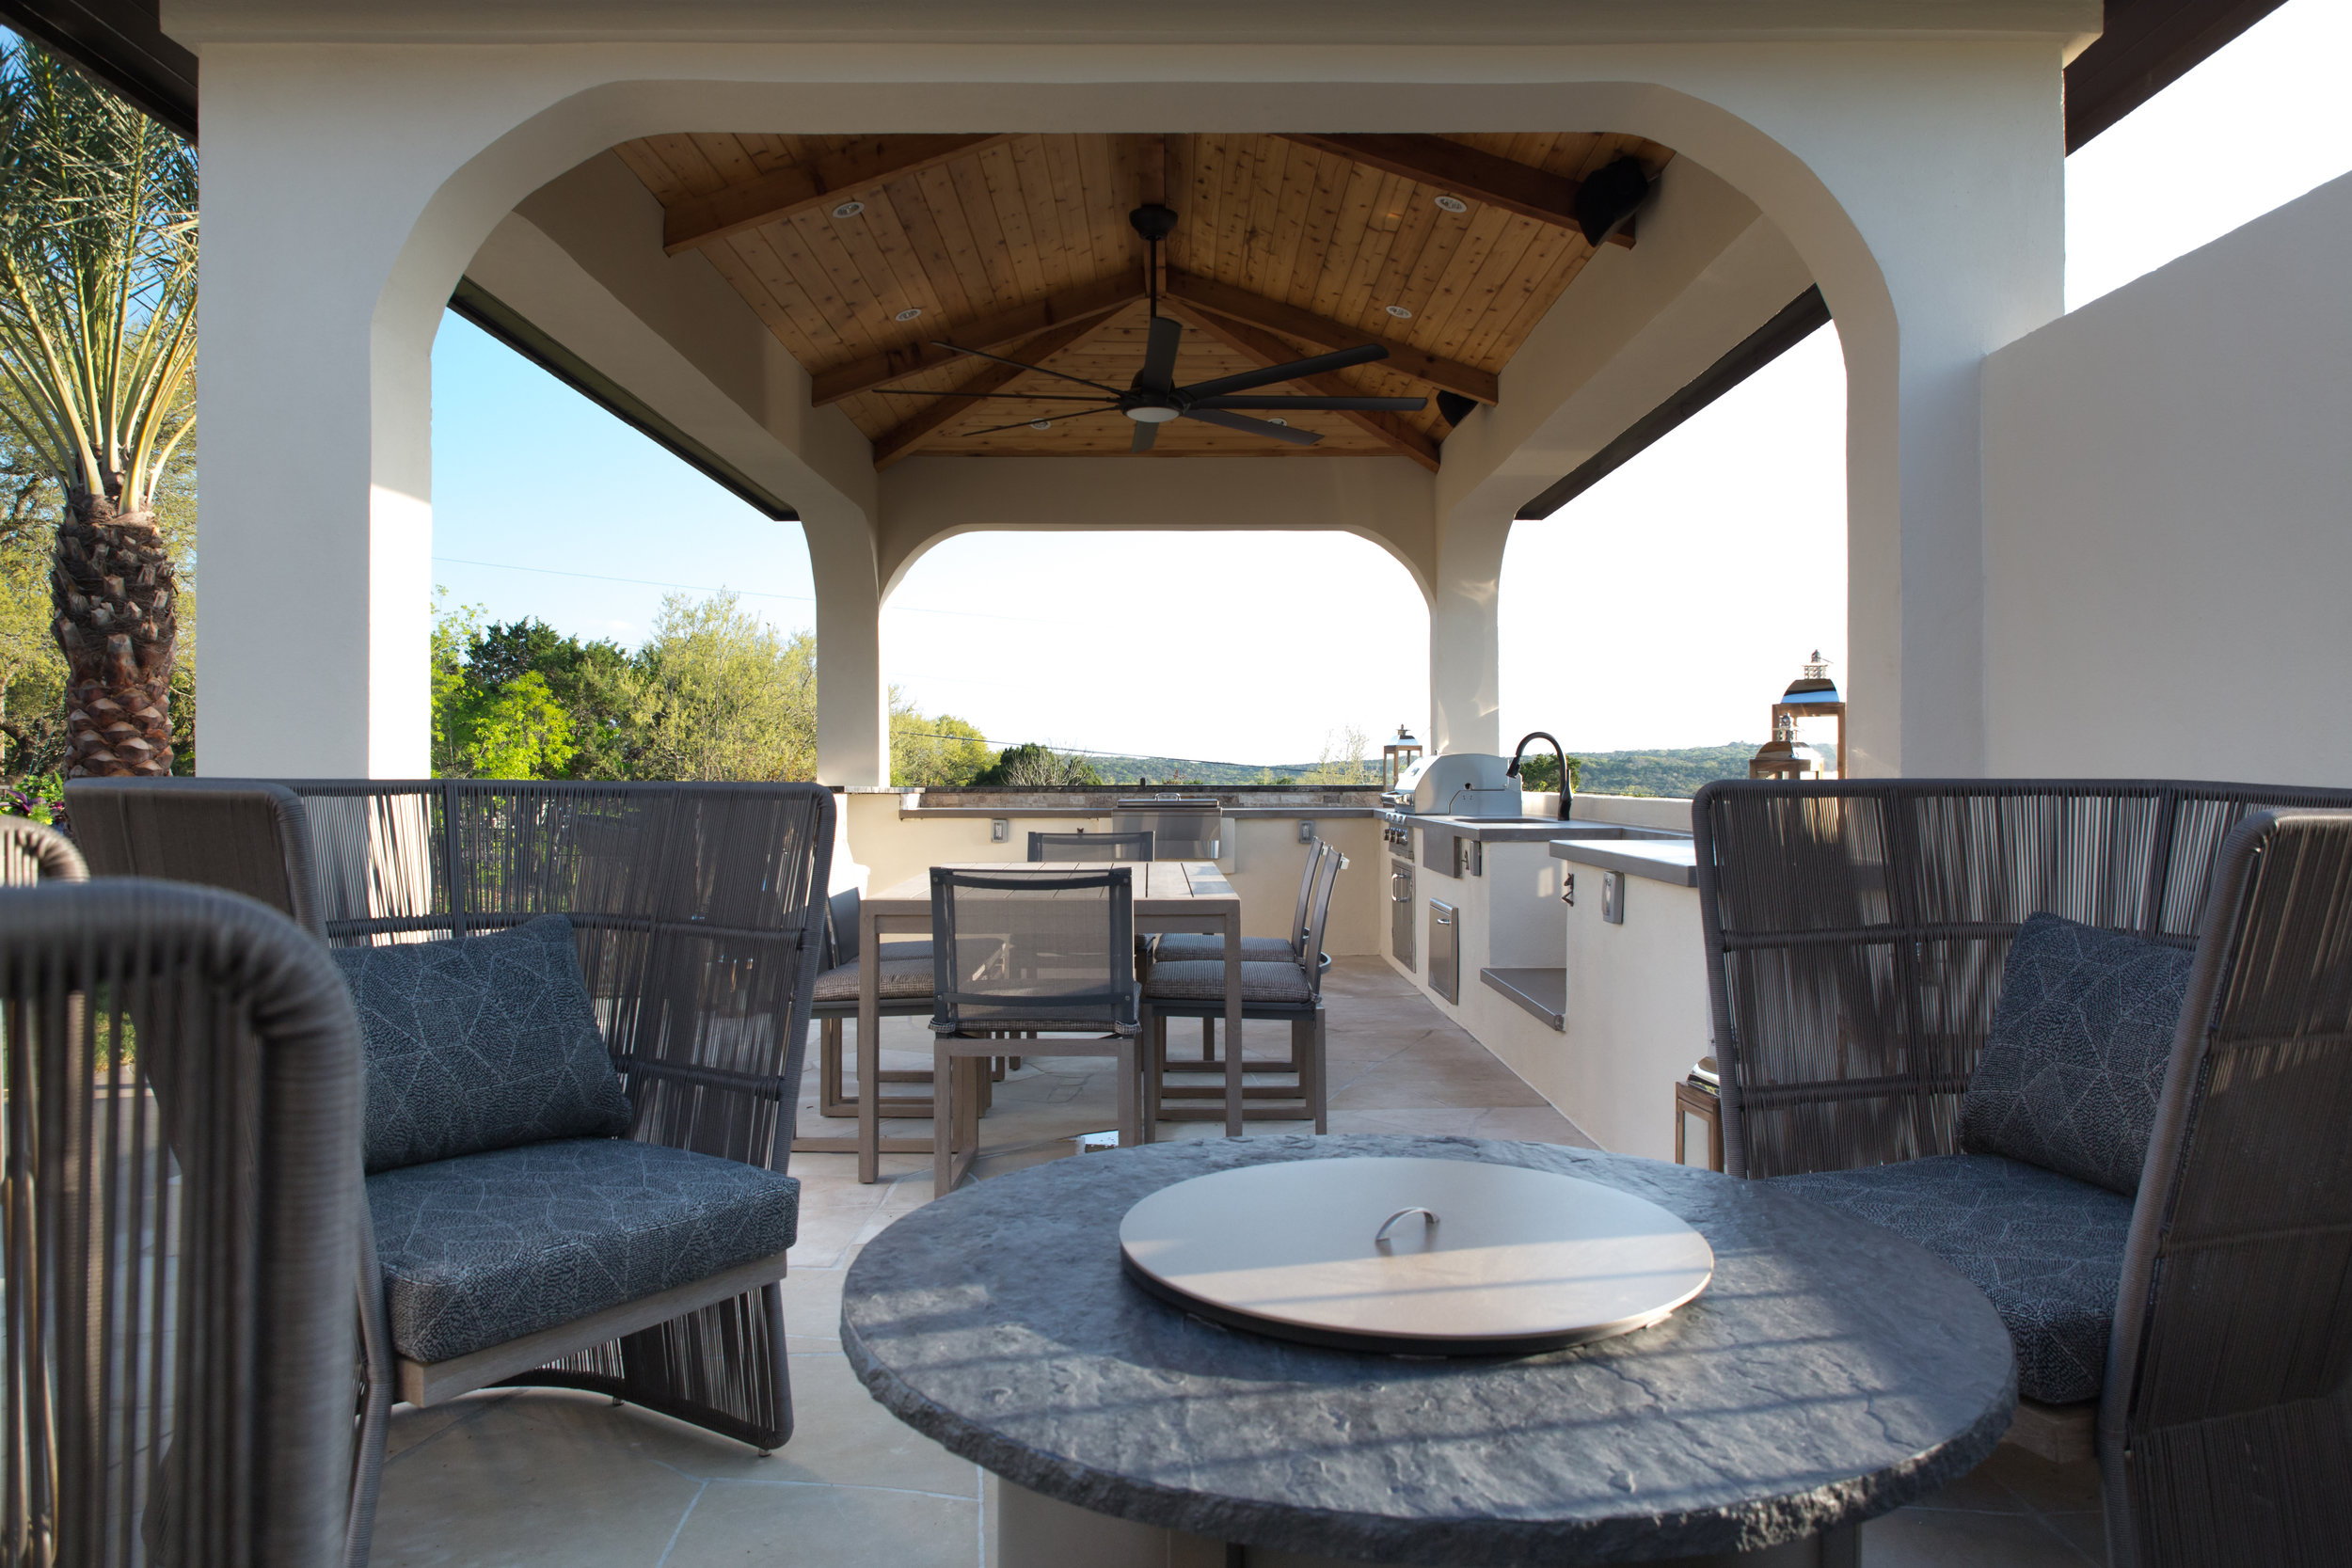 Outdoor Seating Area with Cabana